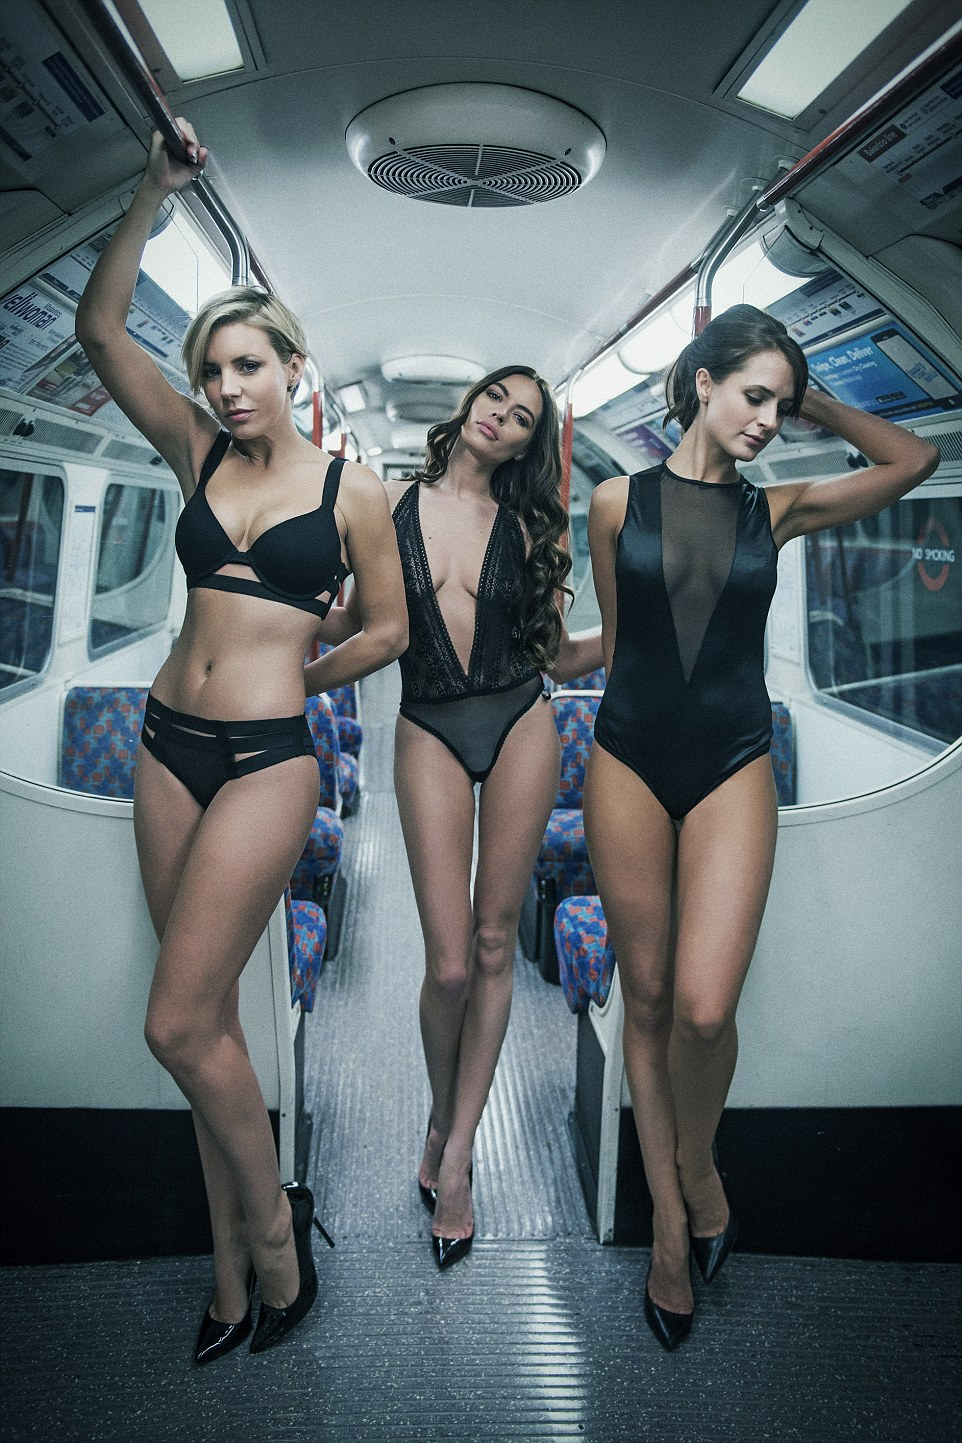 Lingerie Clad Models Turned London Underground Into A Sexy